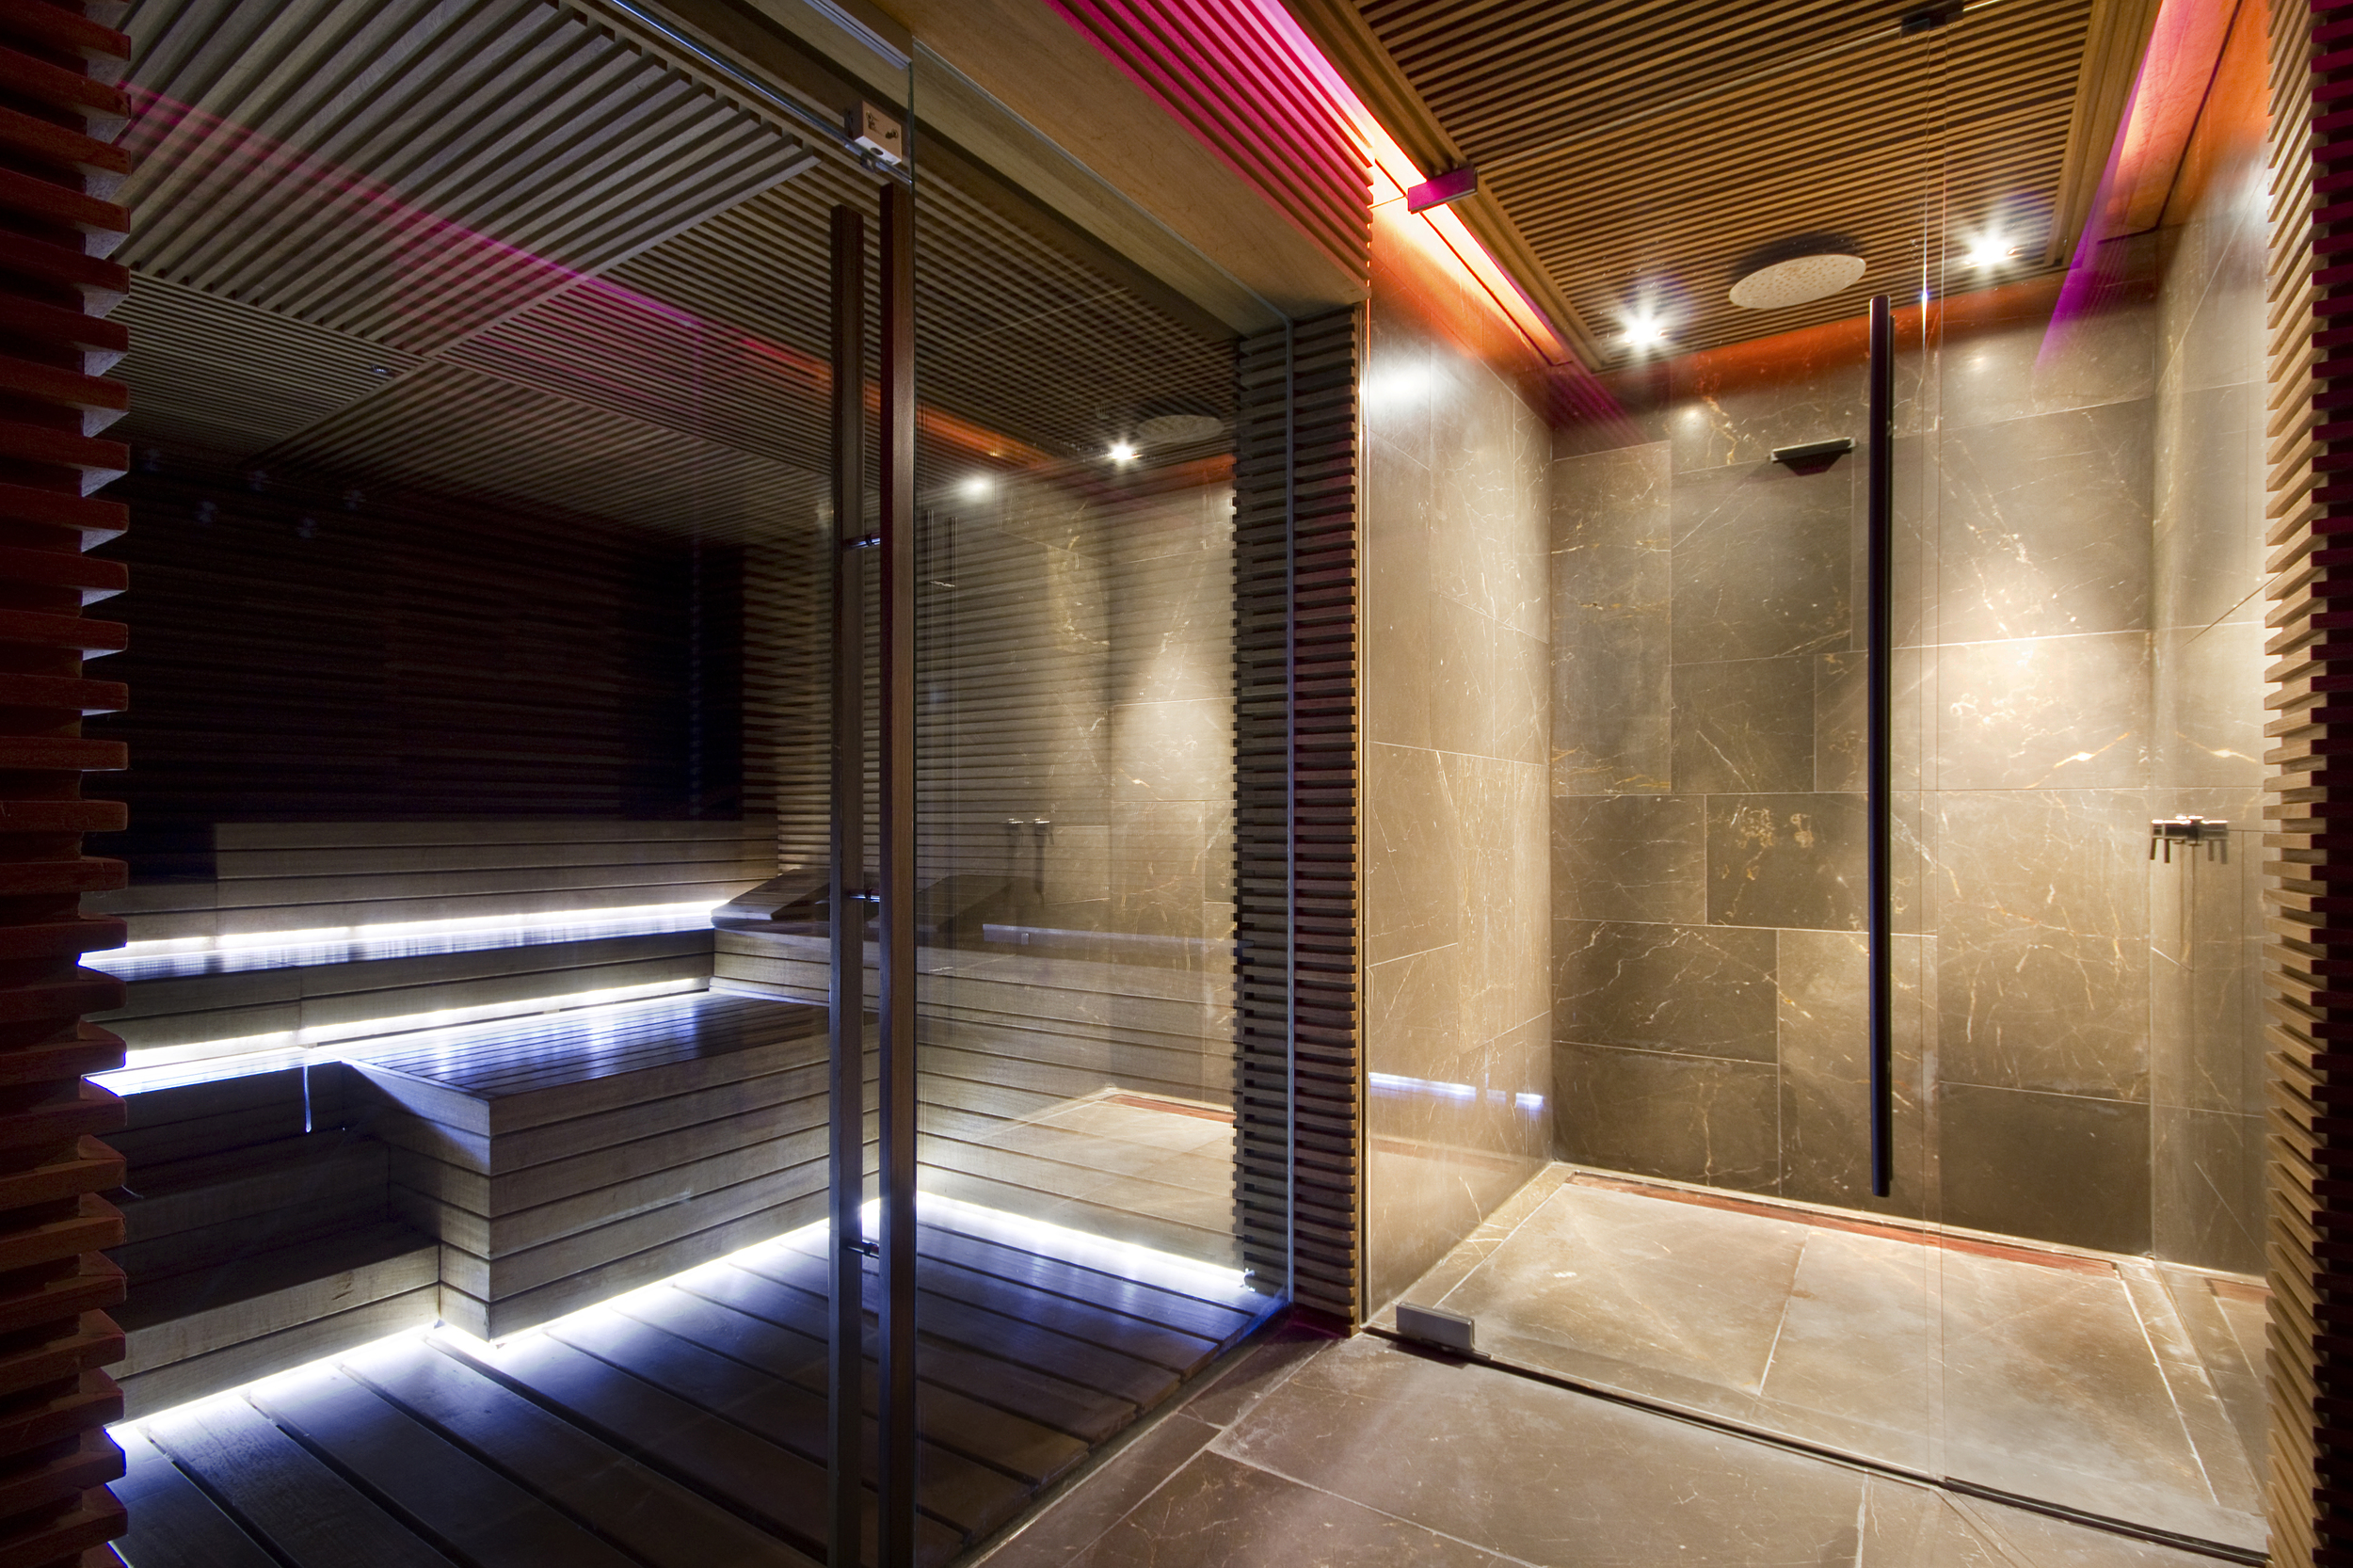 Conservatorium Hotel Amsterdam - sauna and shower.jpg